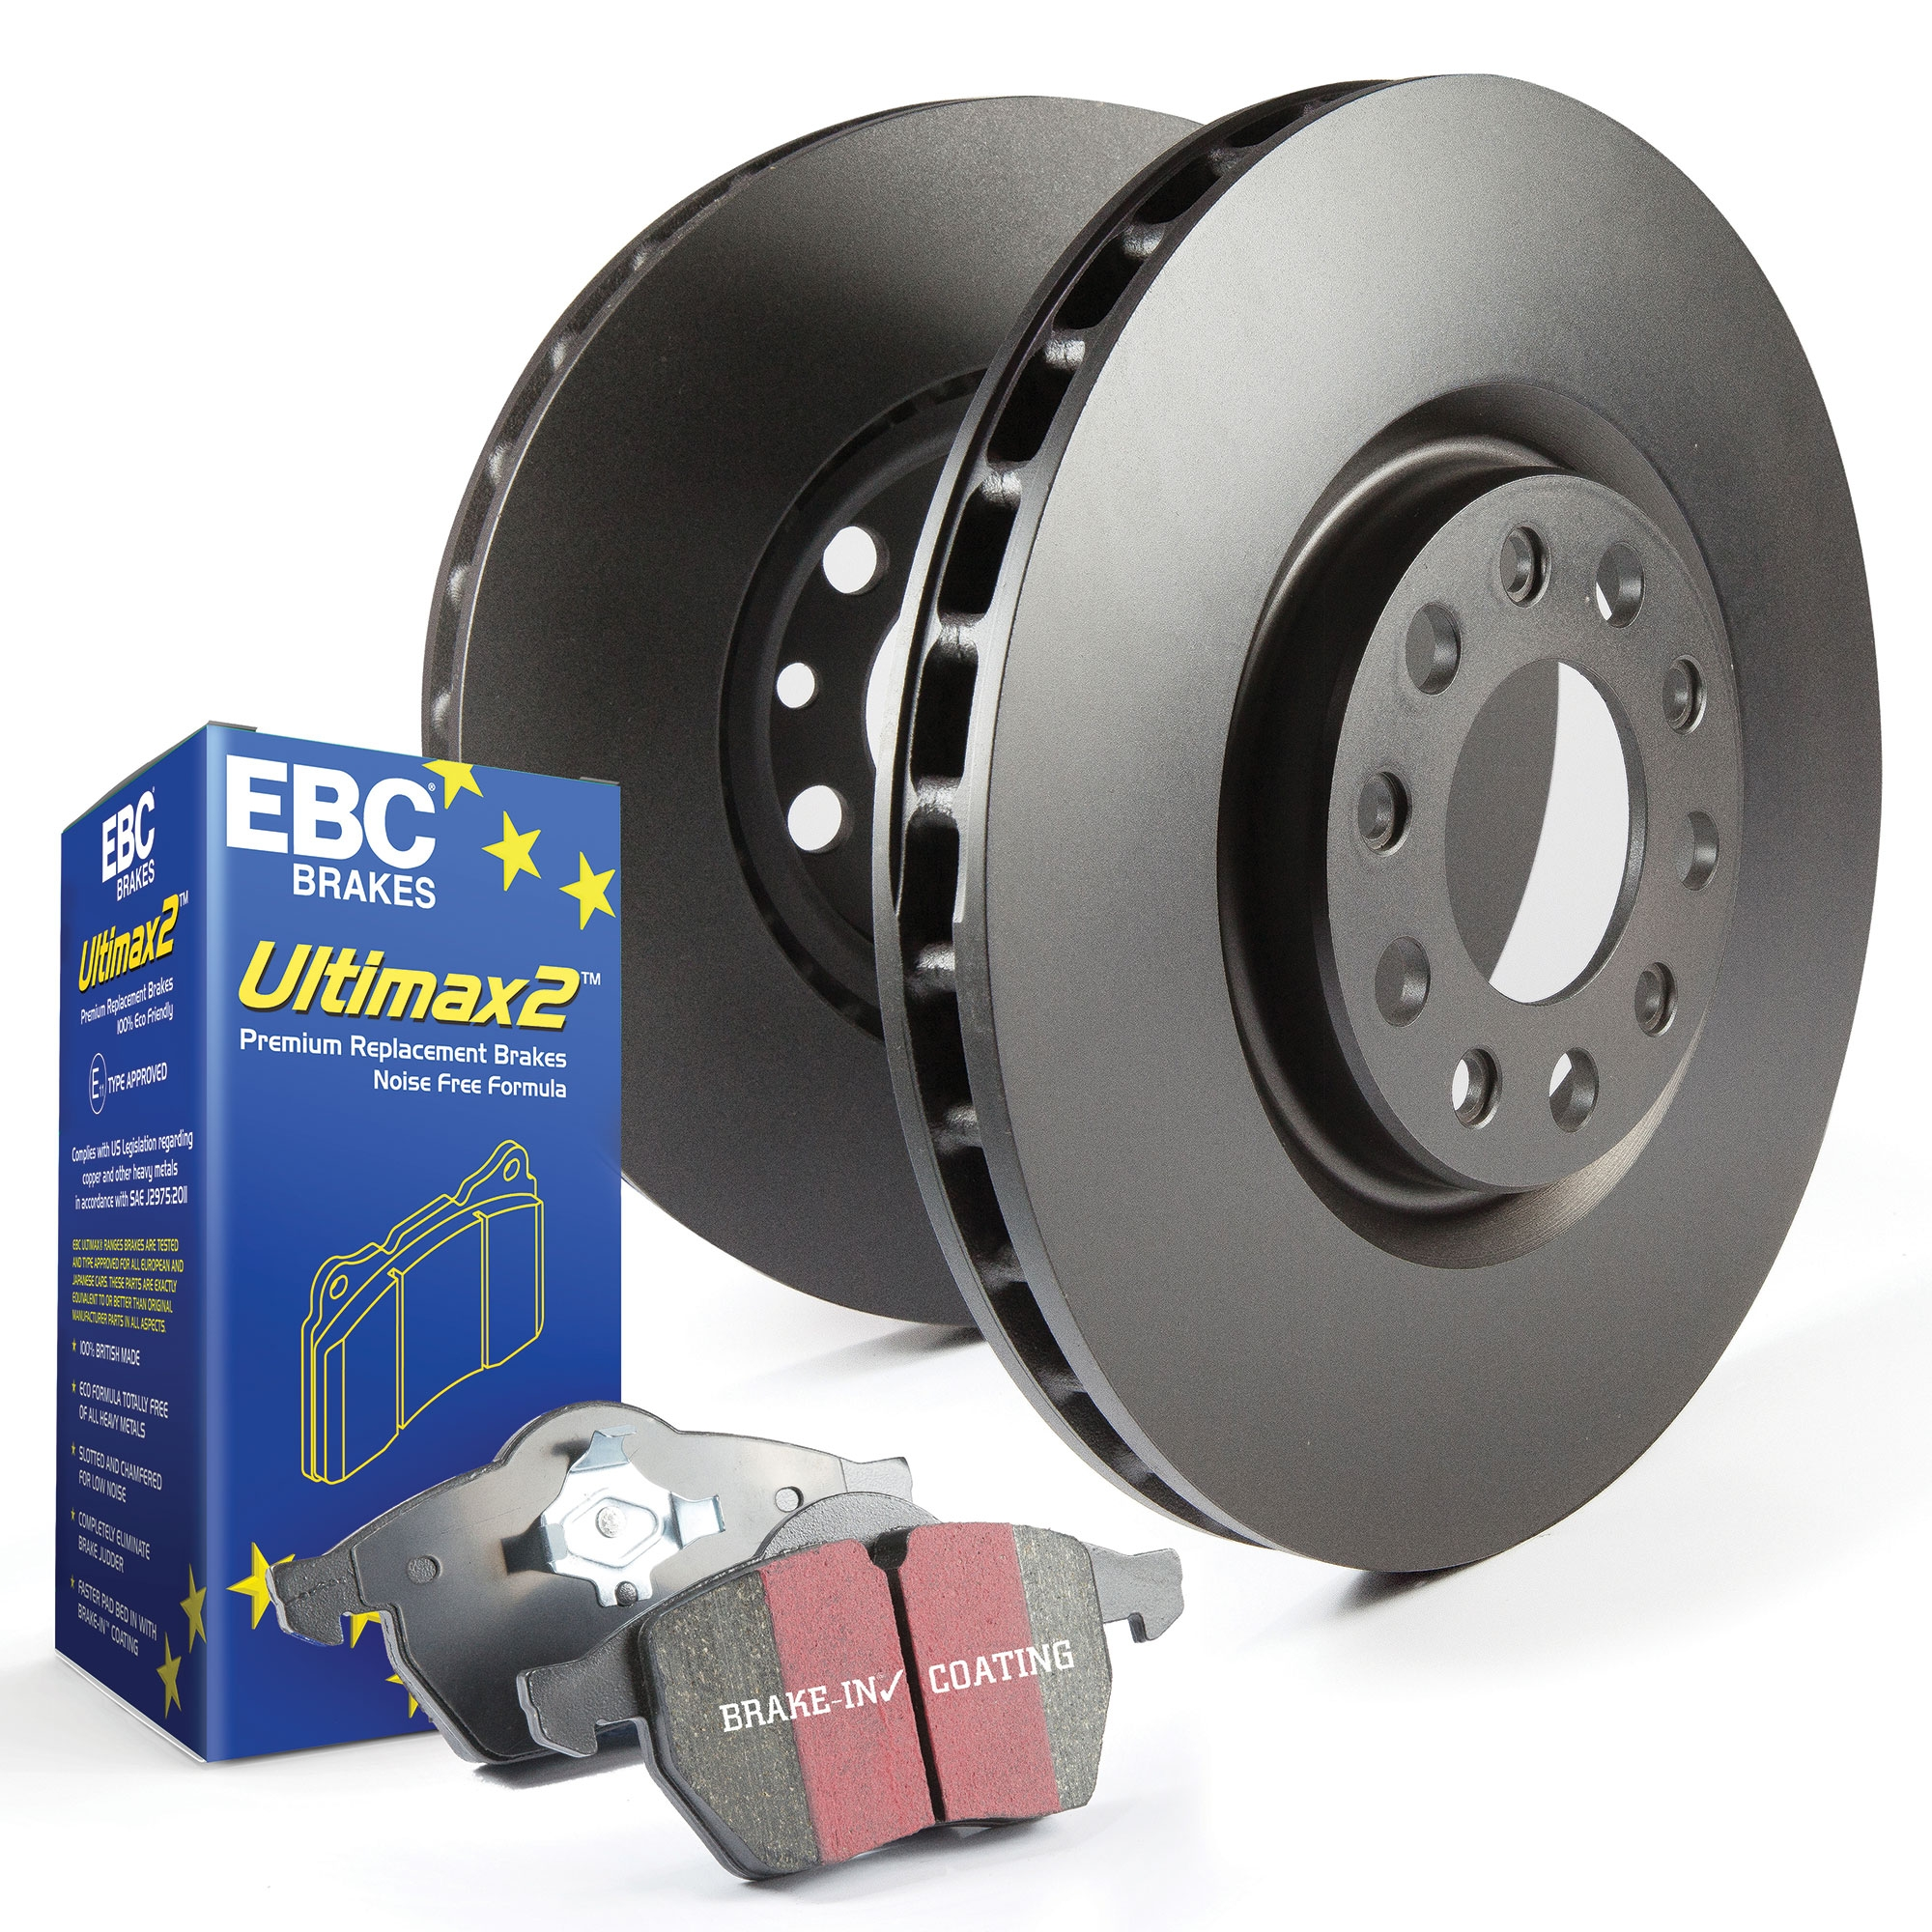 PDKF990 EBC Front OE//OEM Replacement Brake Discs and Ultimax Pads Kit